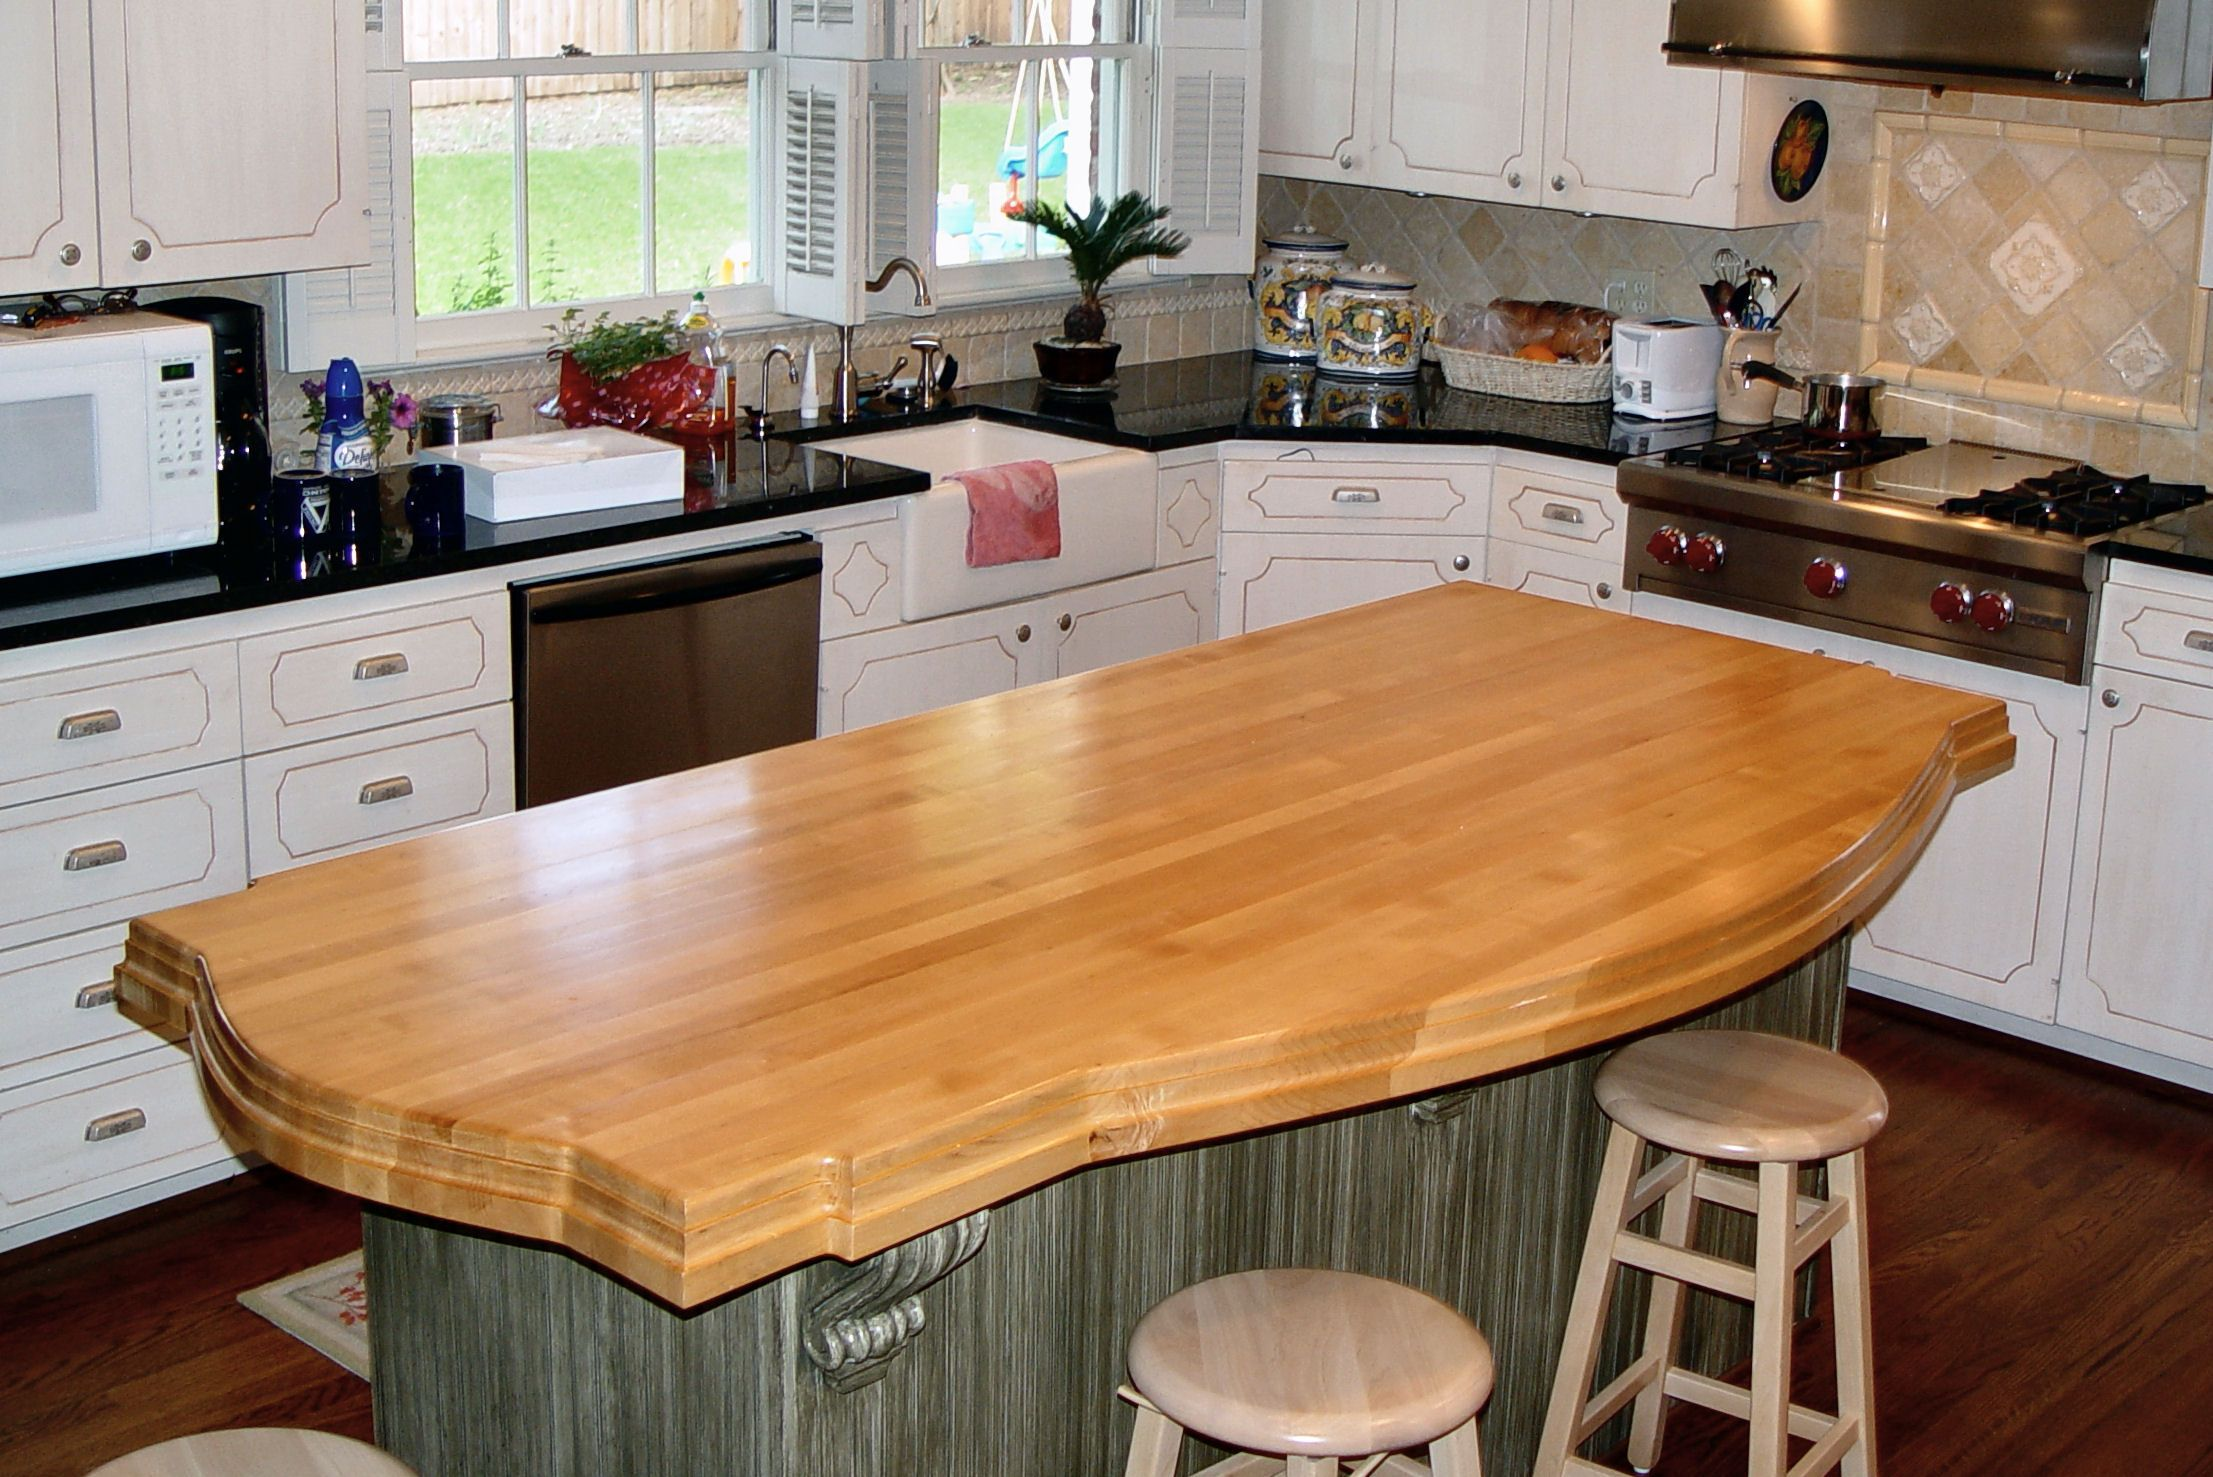 Hard maple wood countertop photo gallery by devos custom woodworking - Counter island designs ...